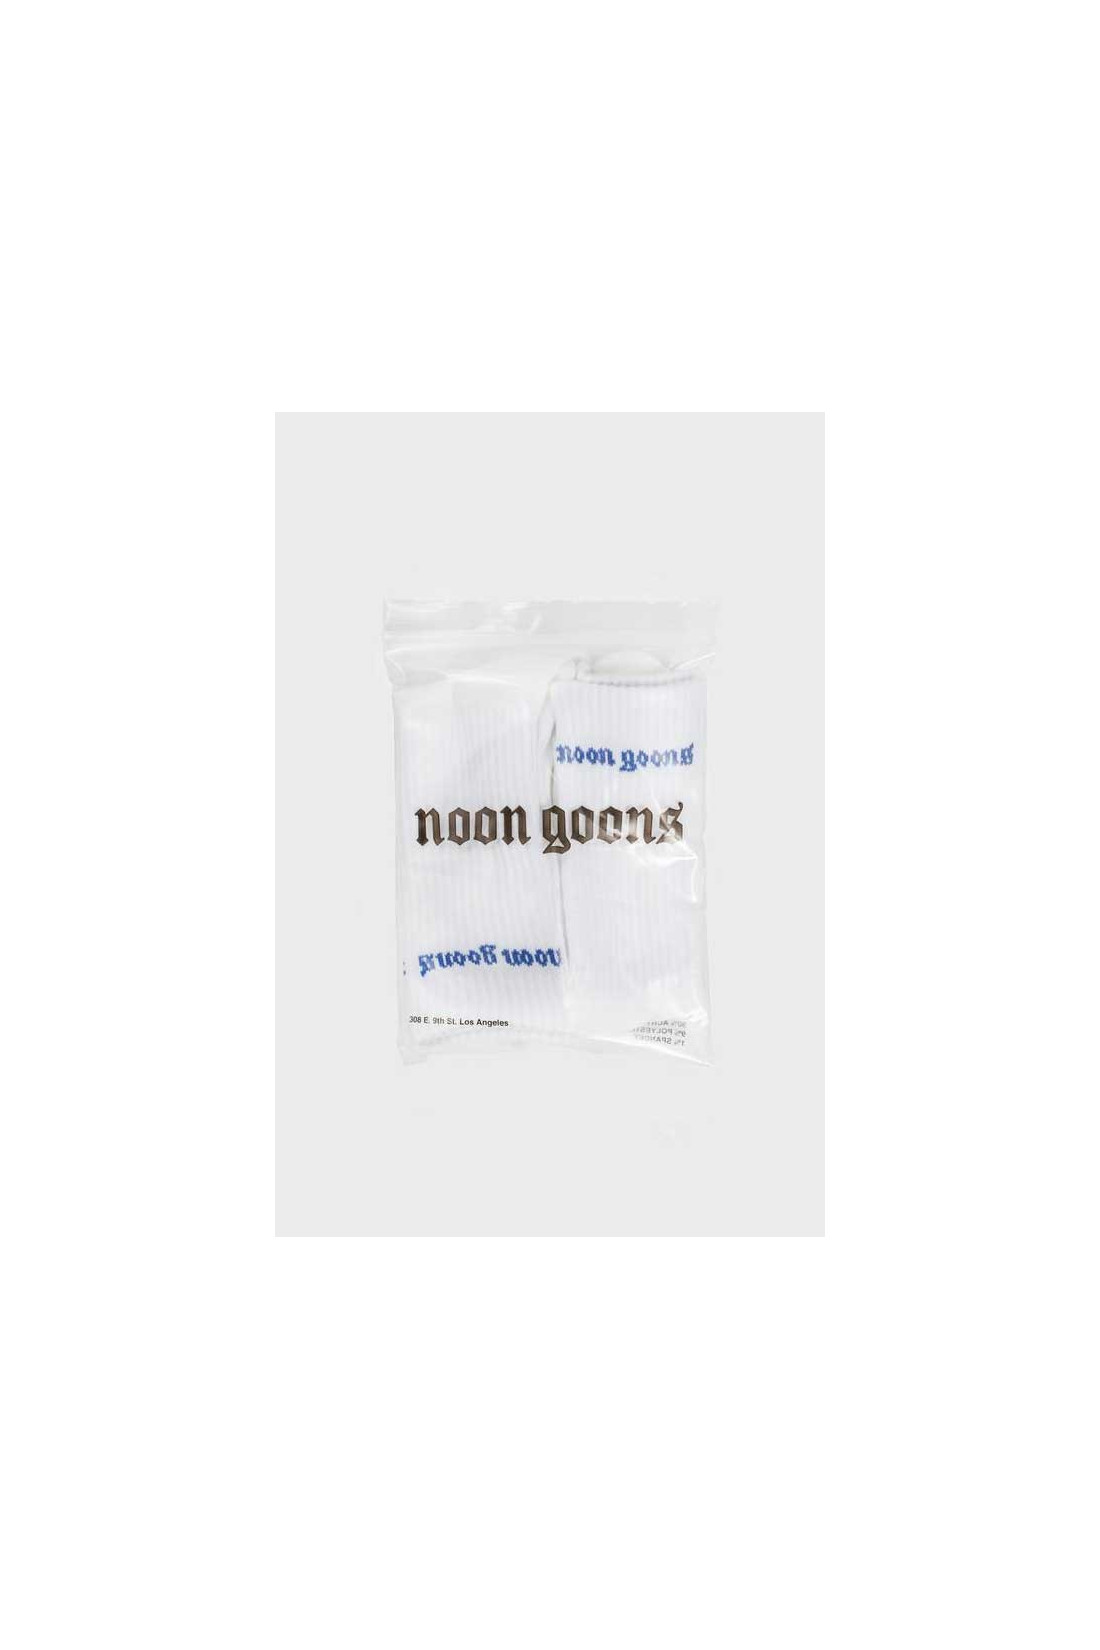 NOON GOONS / Stop sox old english pack Blue